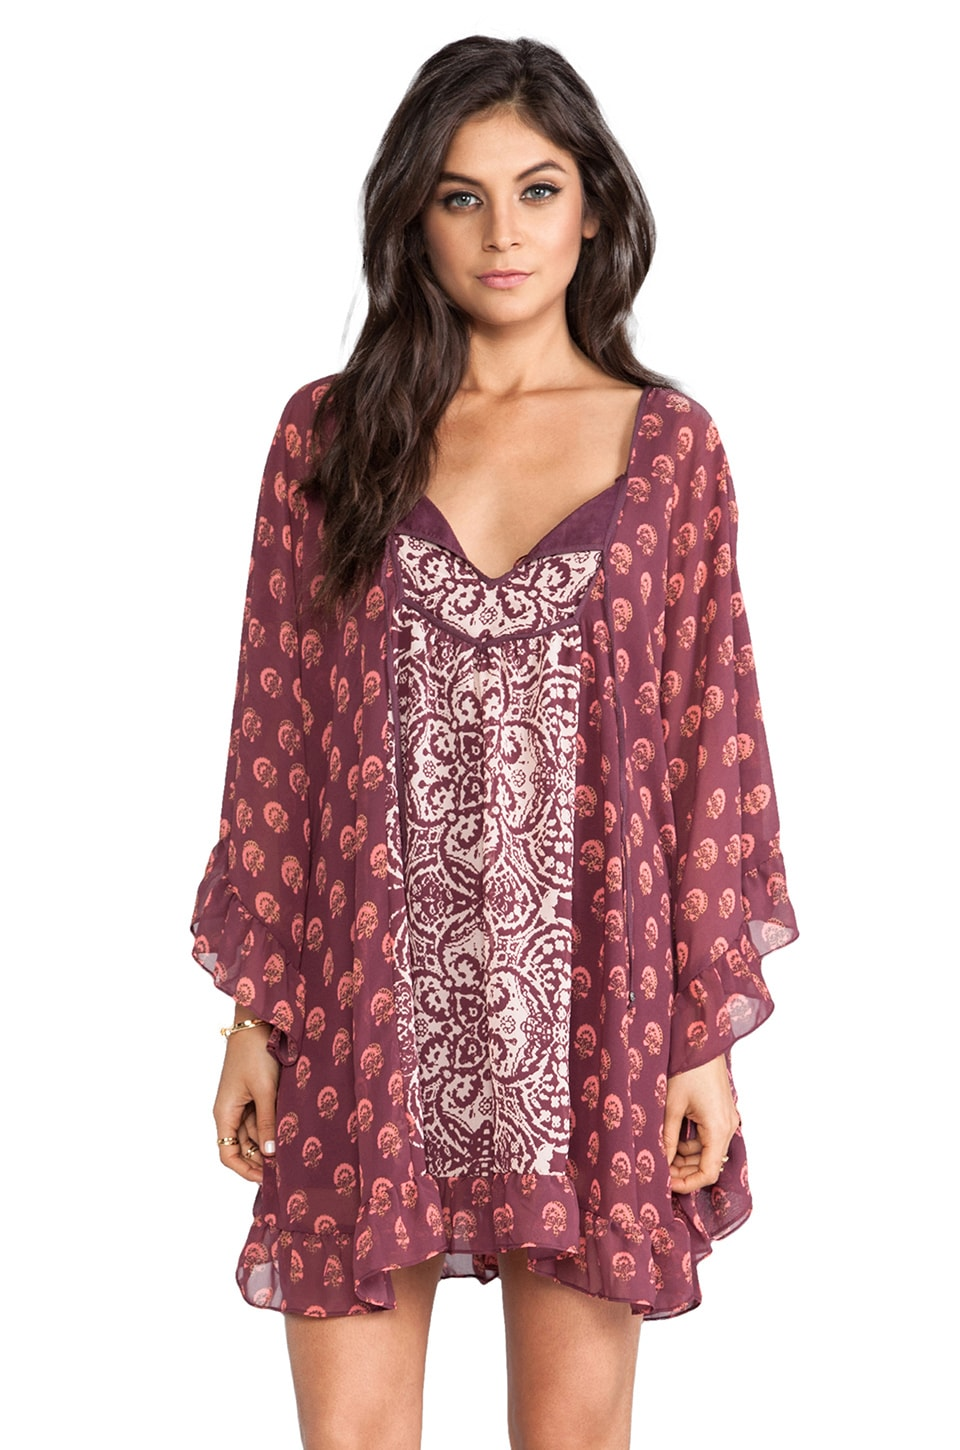 Free People Marla Dreams Dress in Pop